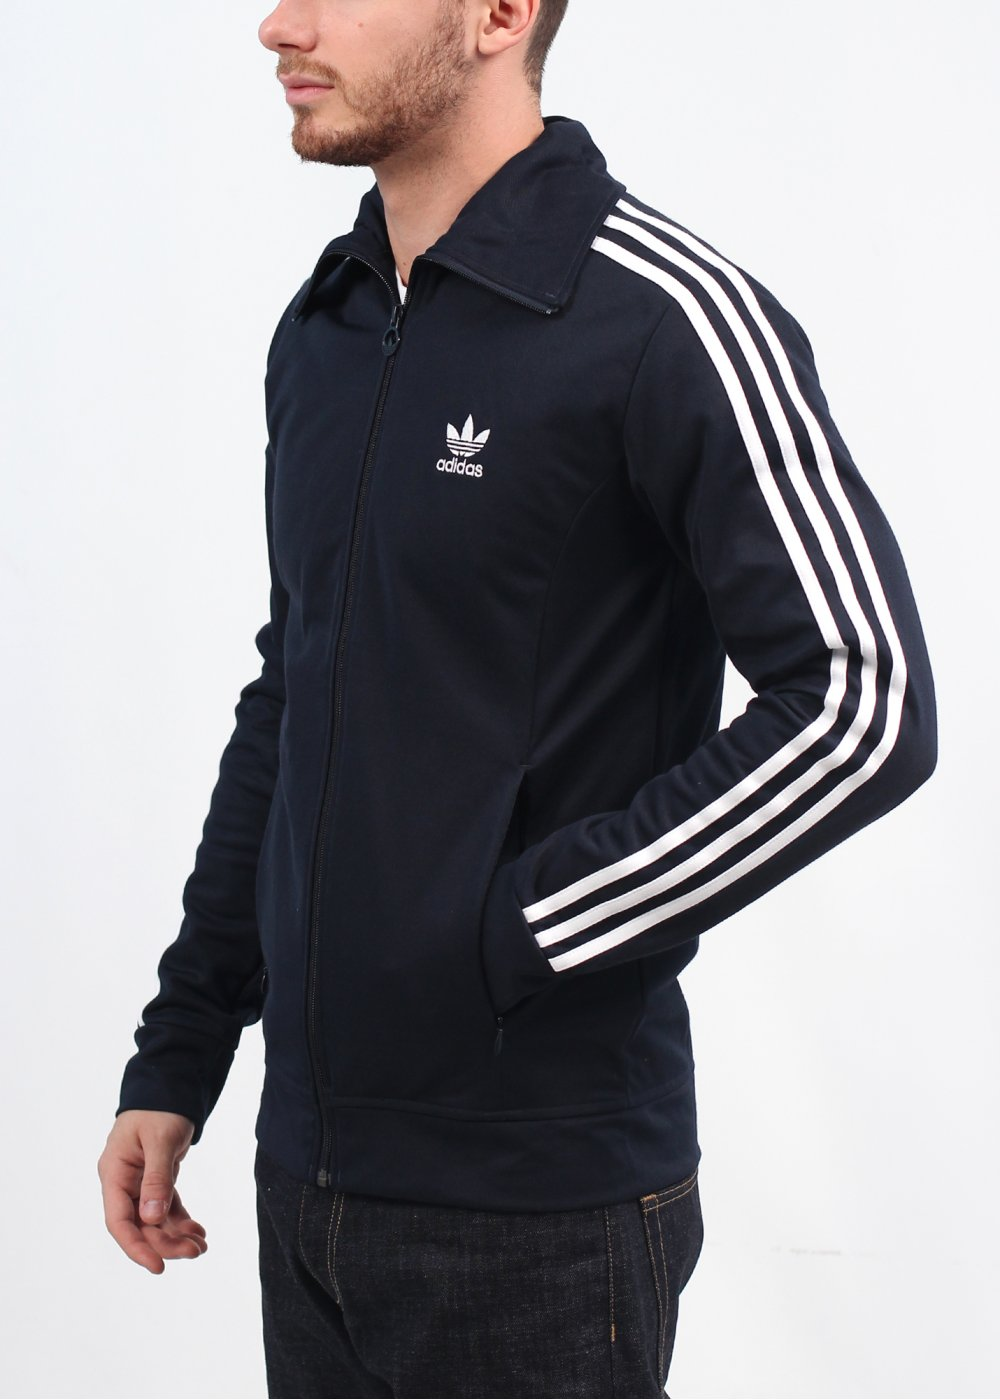 adidas originals europa track top legend ink. Black Bedroom Furniture Sets. Home Design Ideas